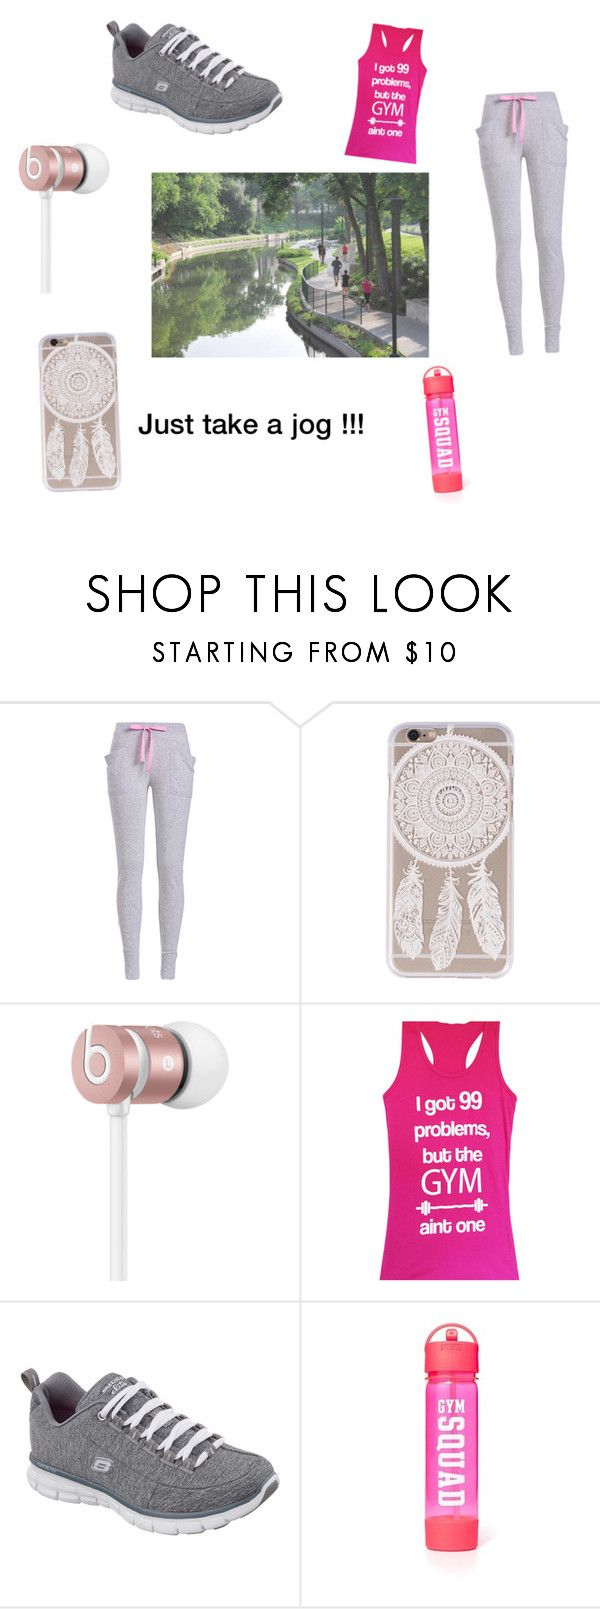 """For those jogging people !!!"" by mikayla8h ❤ liked on Polyvore featuring Beats by Dr. Dre, Skechers and Victoria's Secret"